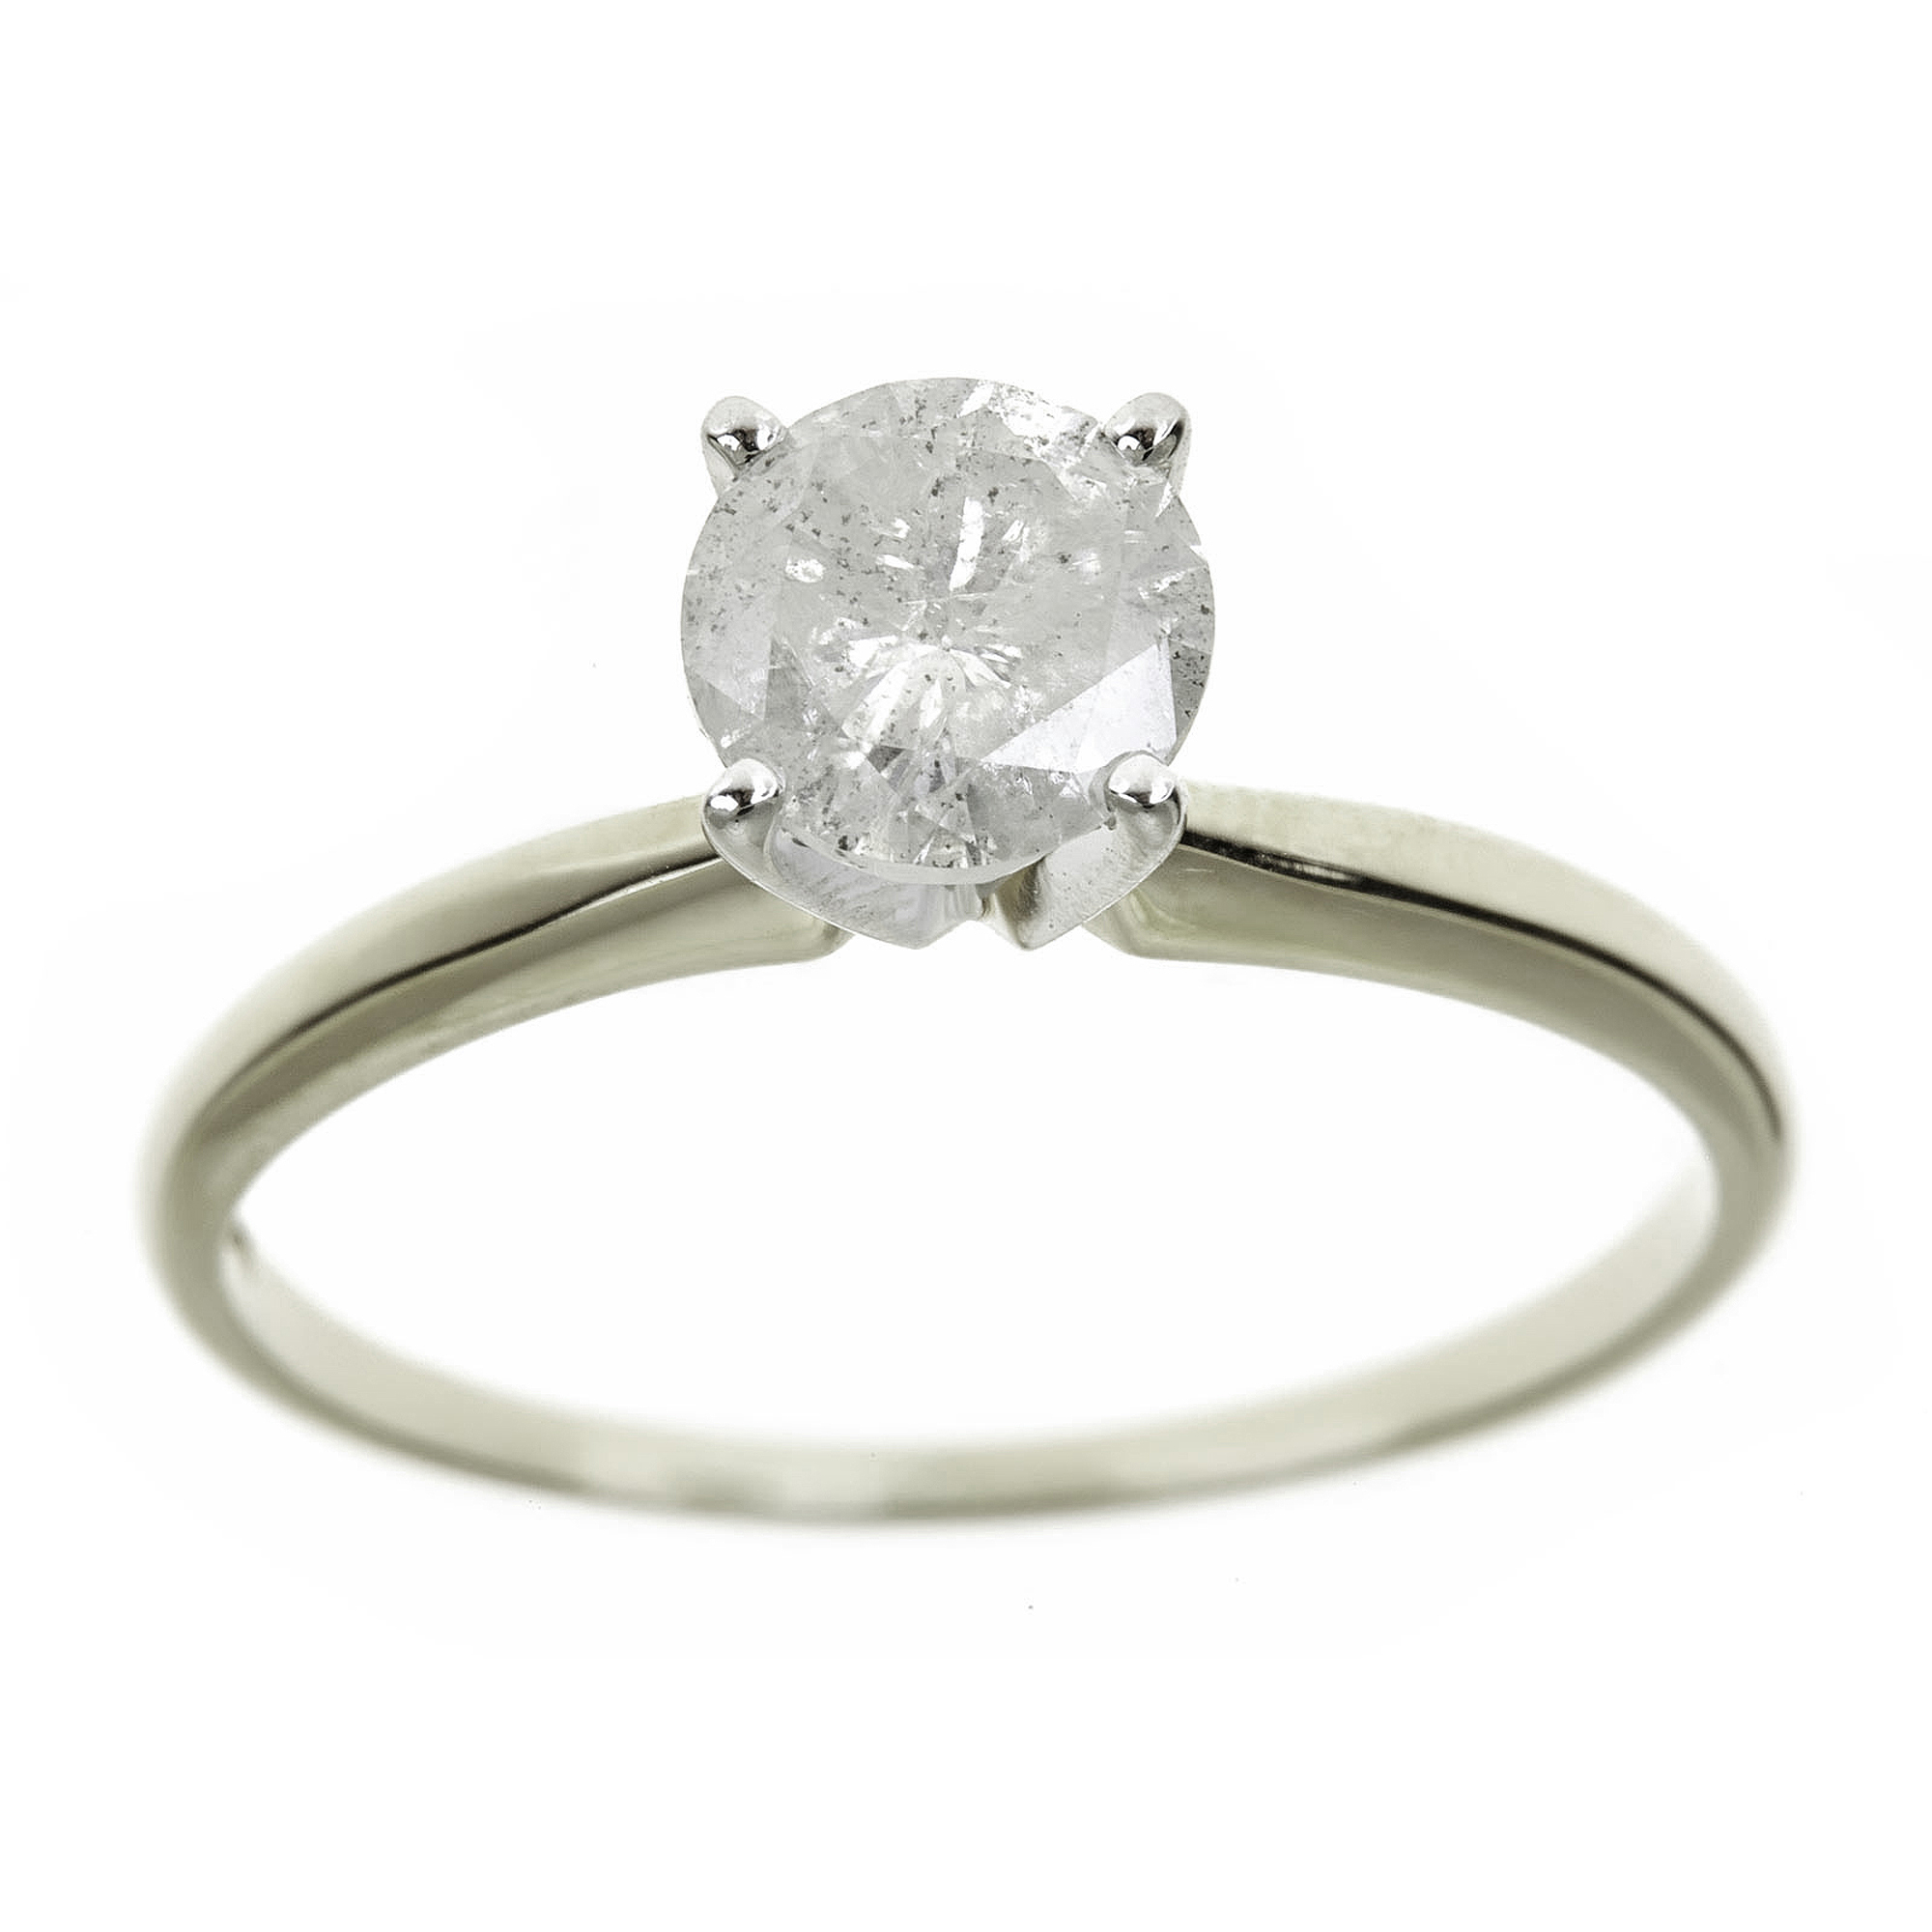 1.5 Carat T.W. Round White Diamond 14kt White Gold Solitaire Ring, IGL certified by Generic